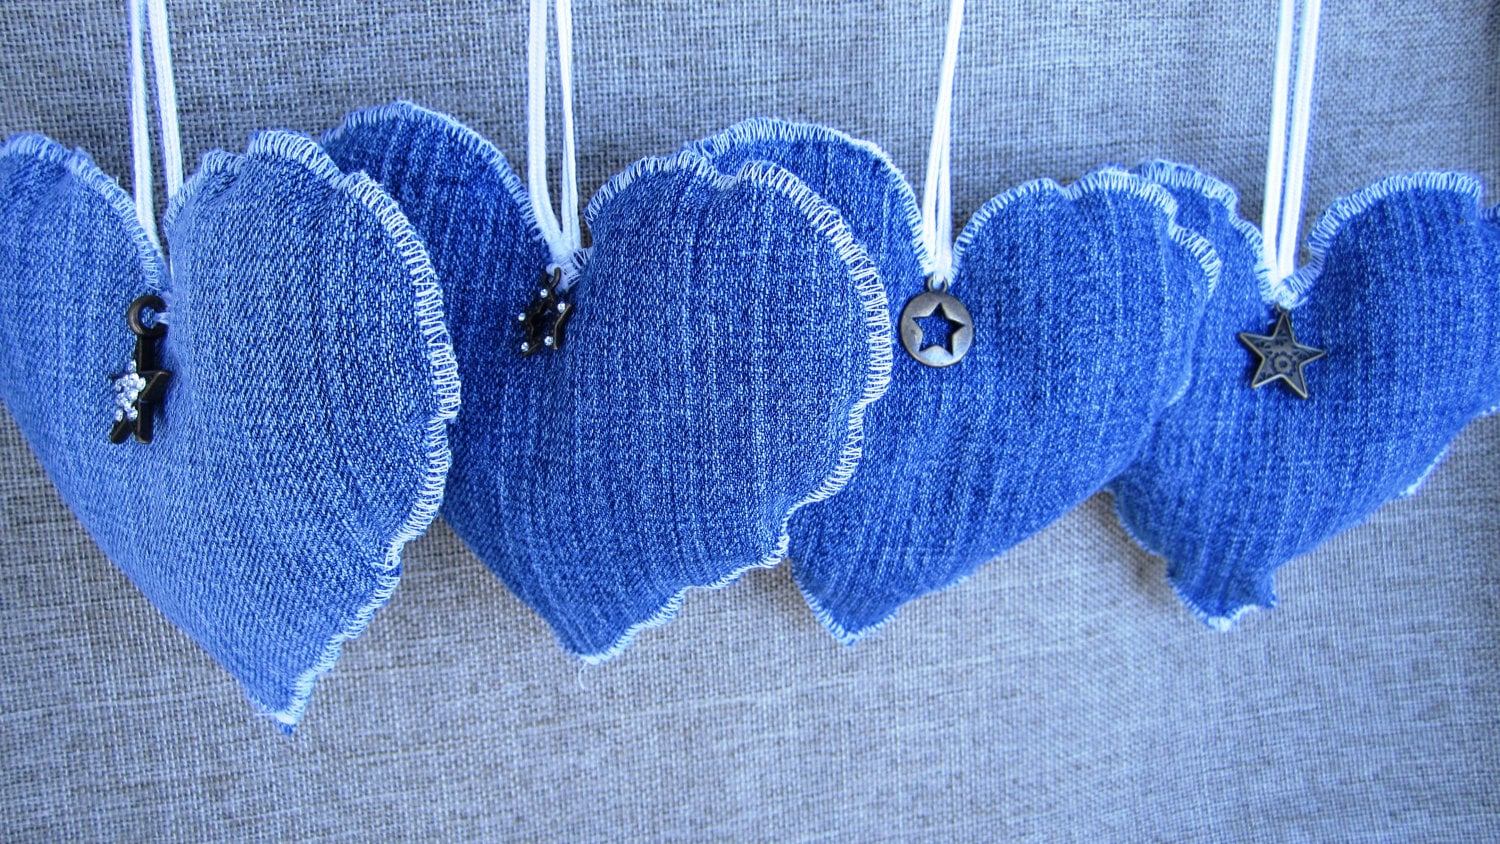 Denim hearts 221 upcycling ideas that will blow your for Jeans upcycling ideas